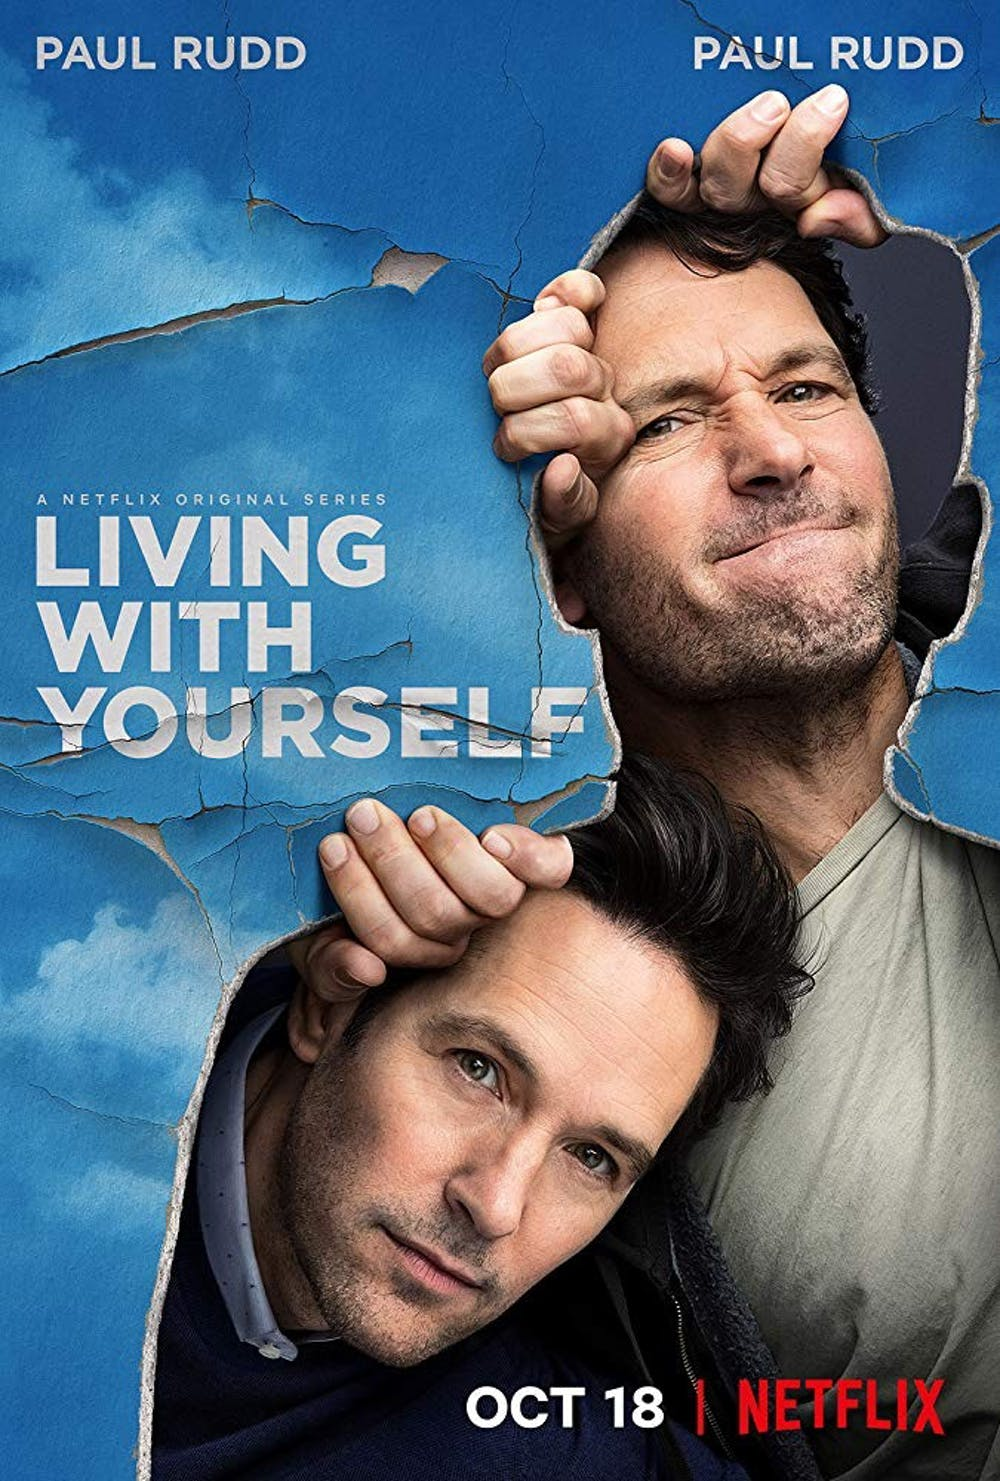 'Living With Yourself' is a hilarious new TV series starring Paul Rudd